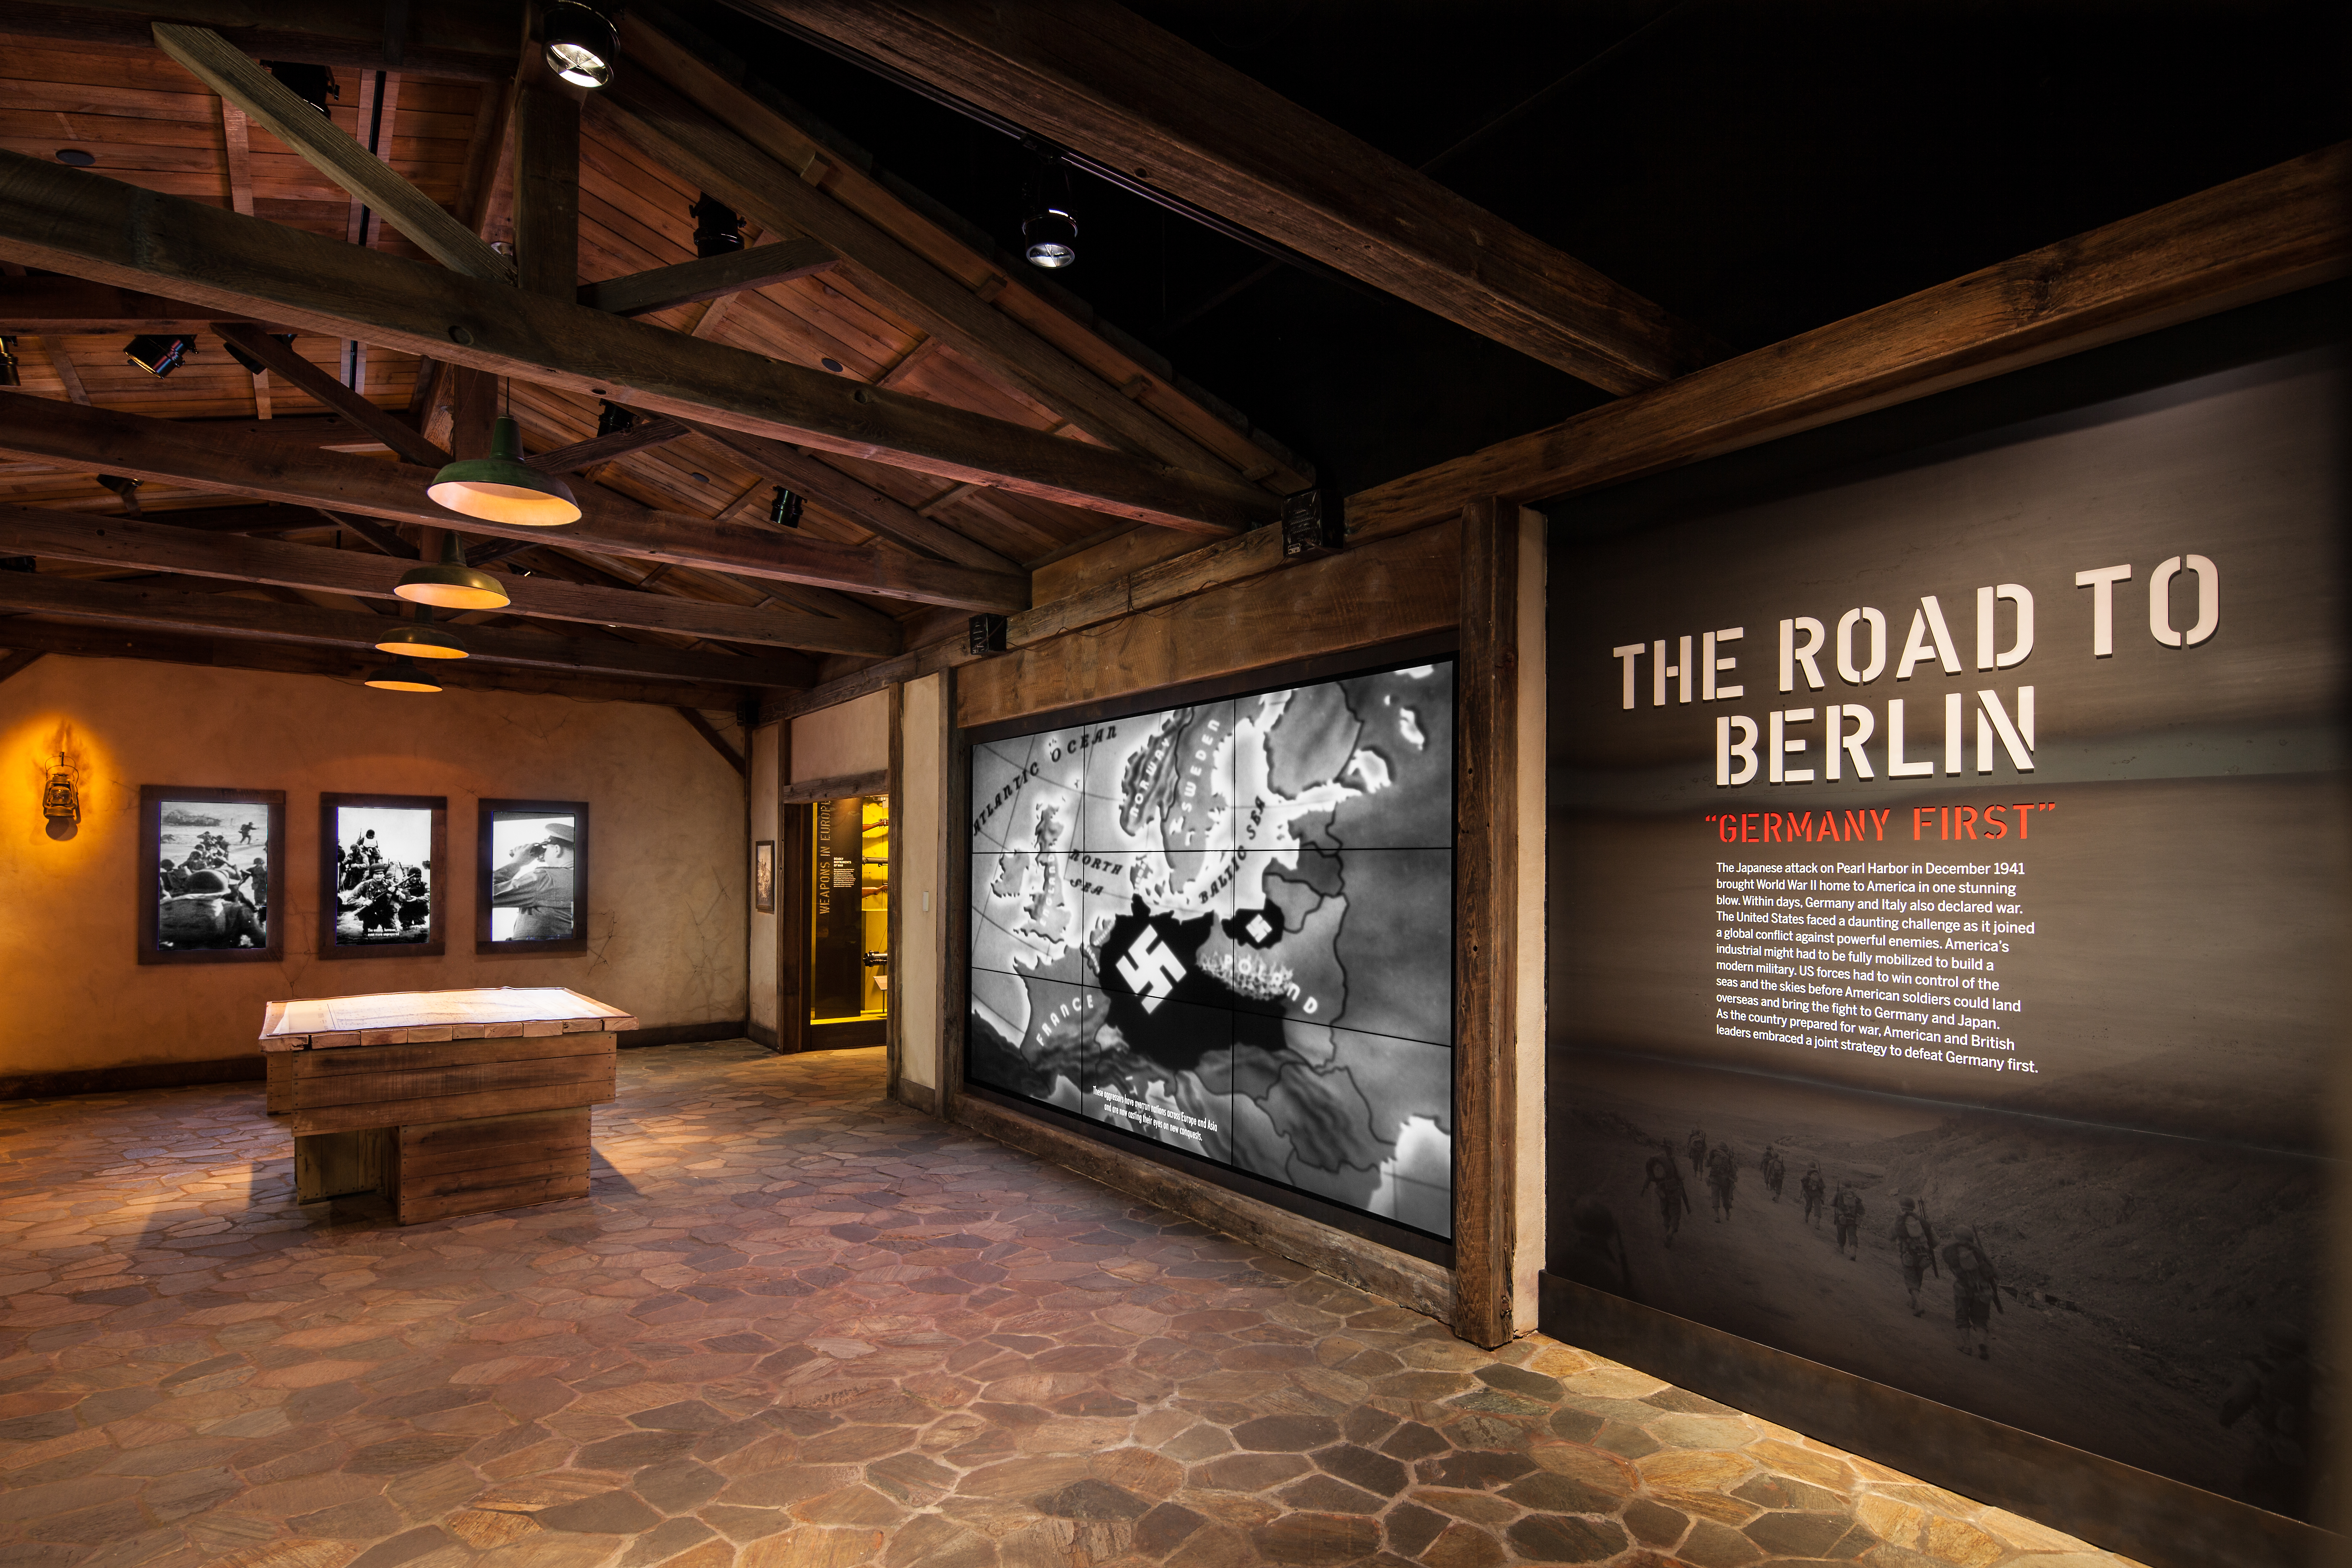 Briefing Room gallery, Road to Berlin